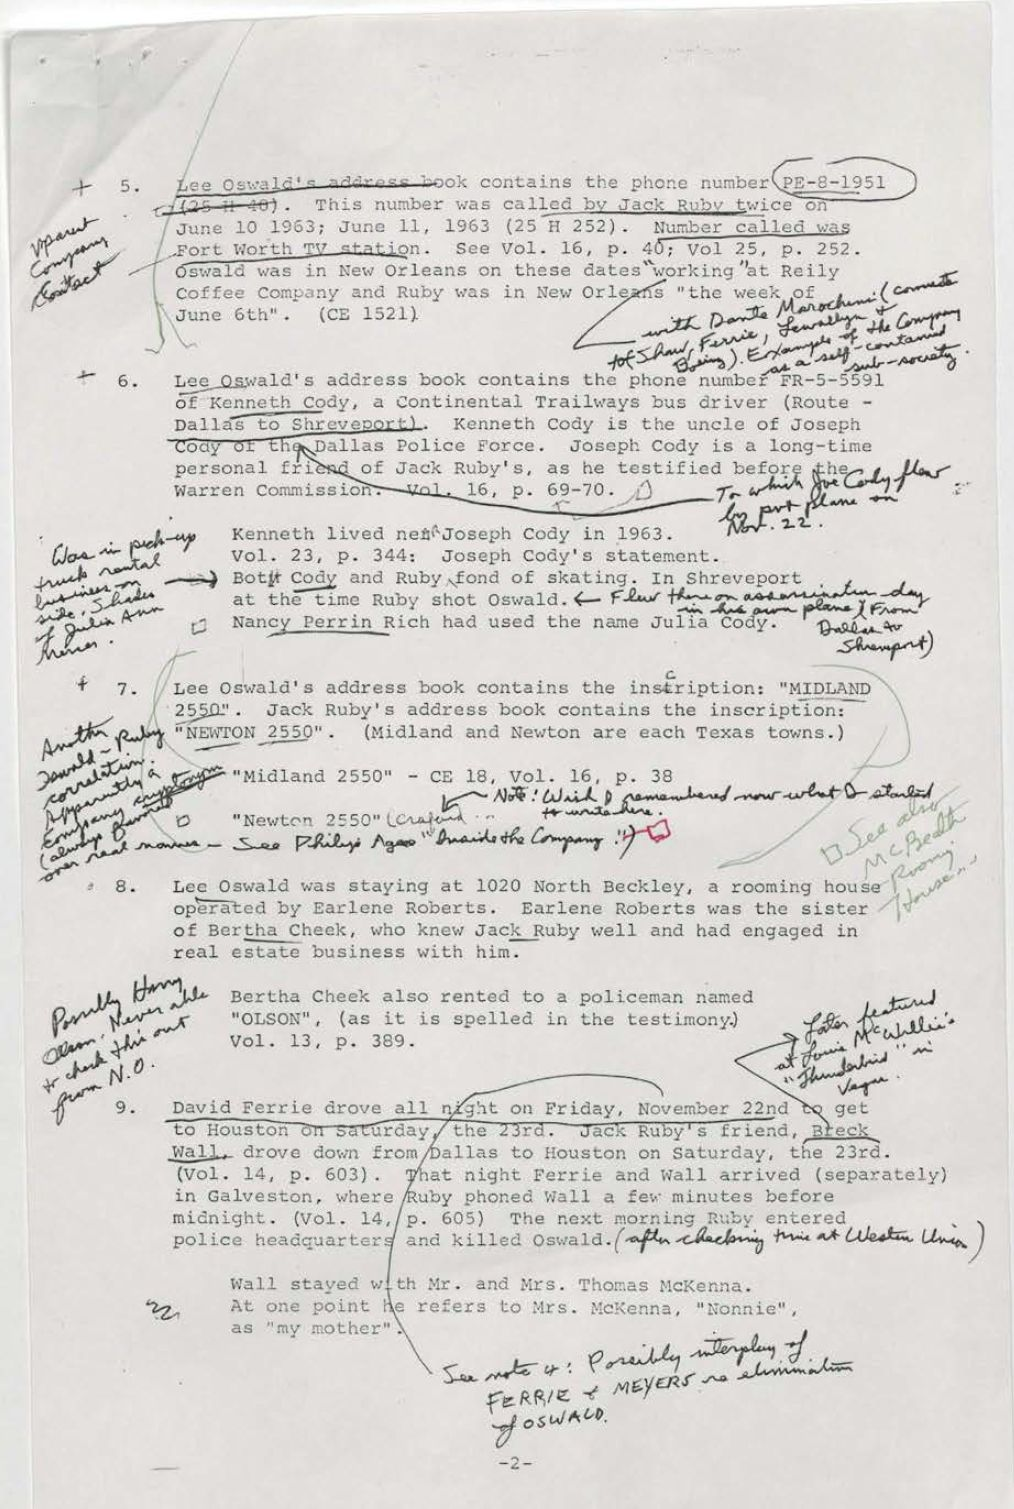 essay on jfk assassination conspiracy buy essay jfk assassination conspiracy theories essay 184 x 238 gif 4kb paperlessarchives com